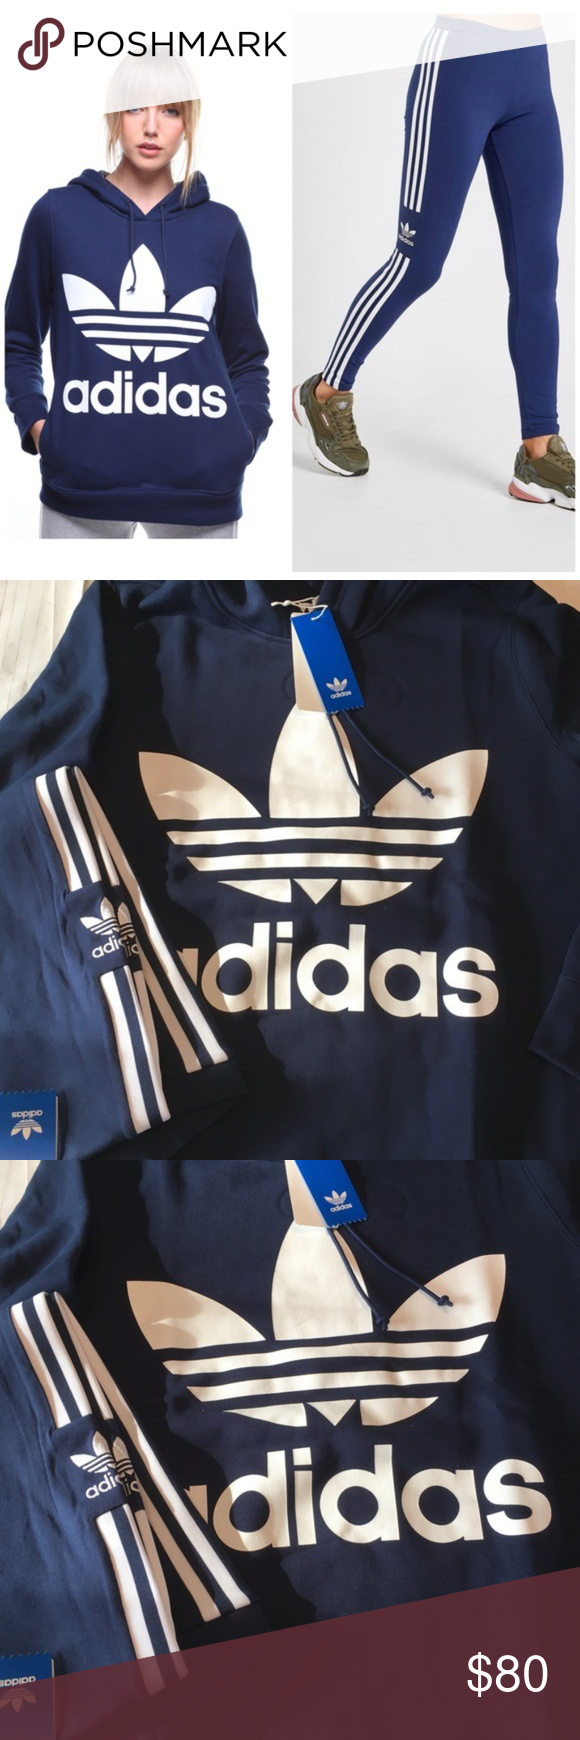 New Matching Adidas Hoodie Leggings Outfit L Set Adidas Originals Outfit Outfits With Leggings Adidas Leggings Outfit [ 1740 x 580 Pixel ]